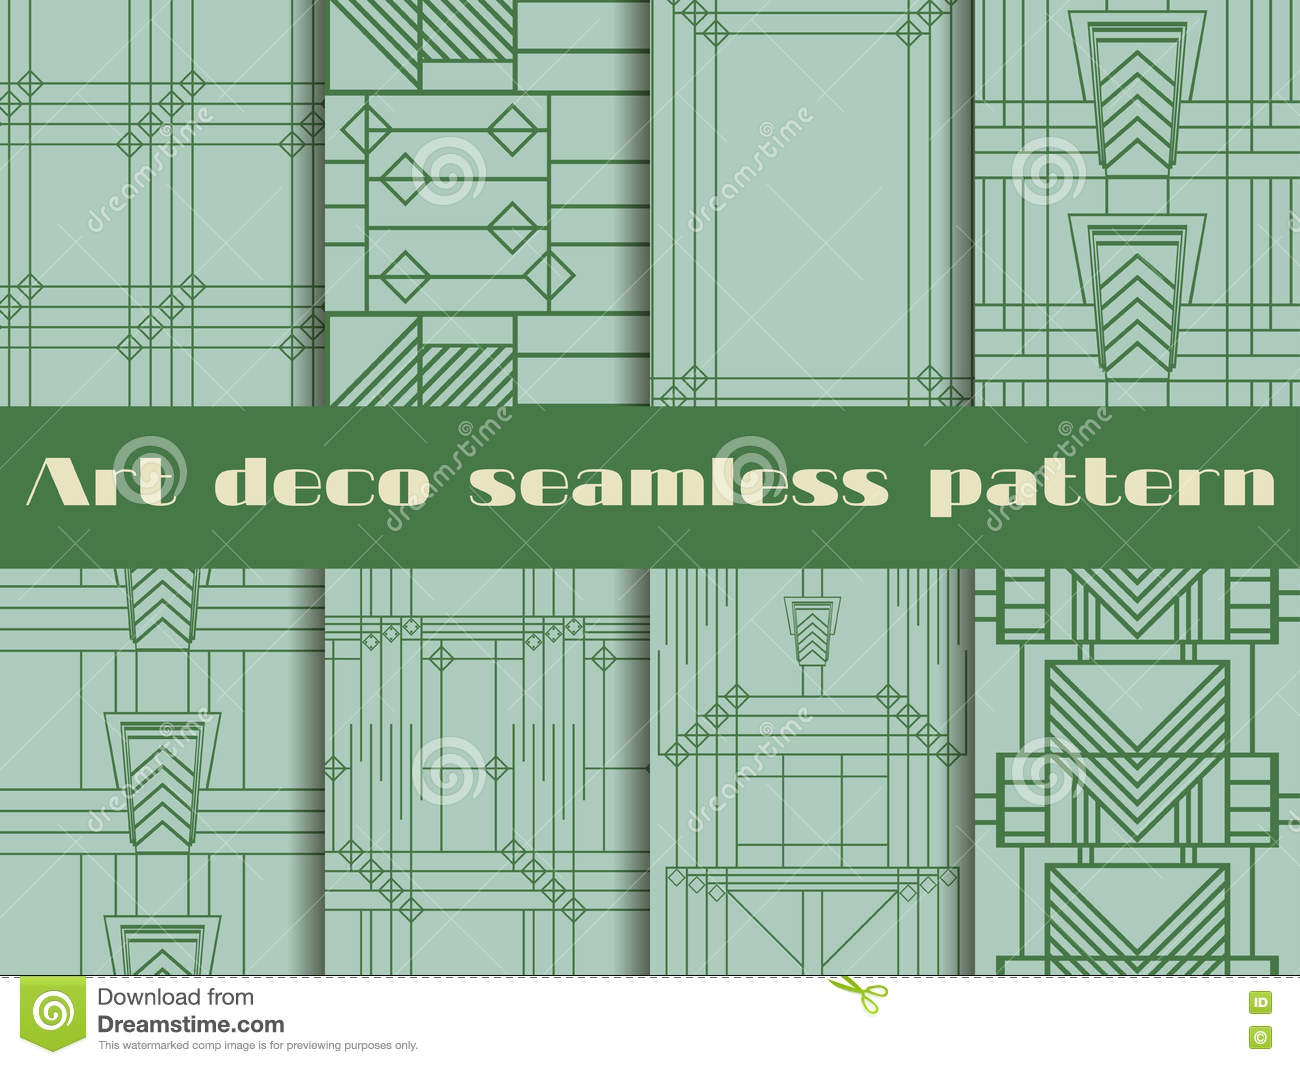 Art deco seamless patterns. The pattern of lines and geometric shapes. Style 1920 s, 1930 s. Vector illustration.